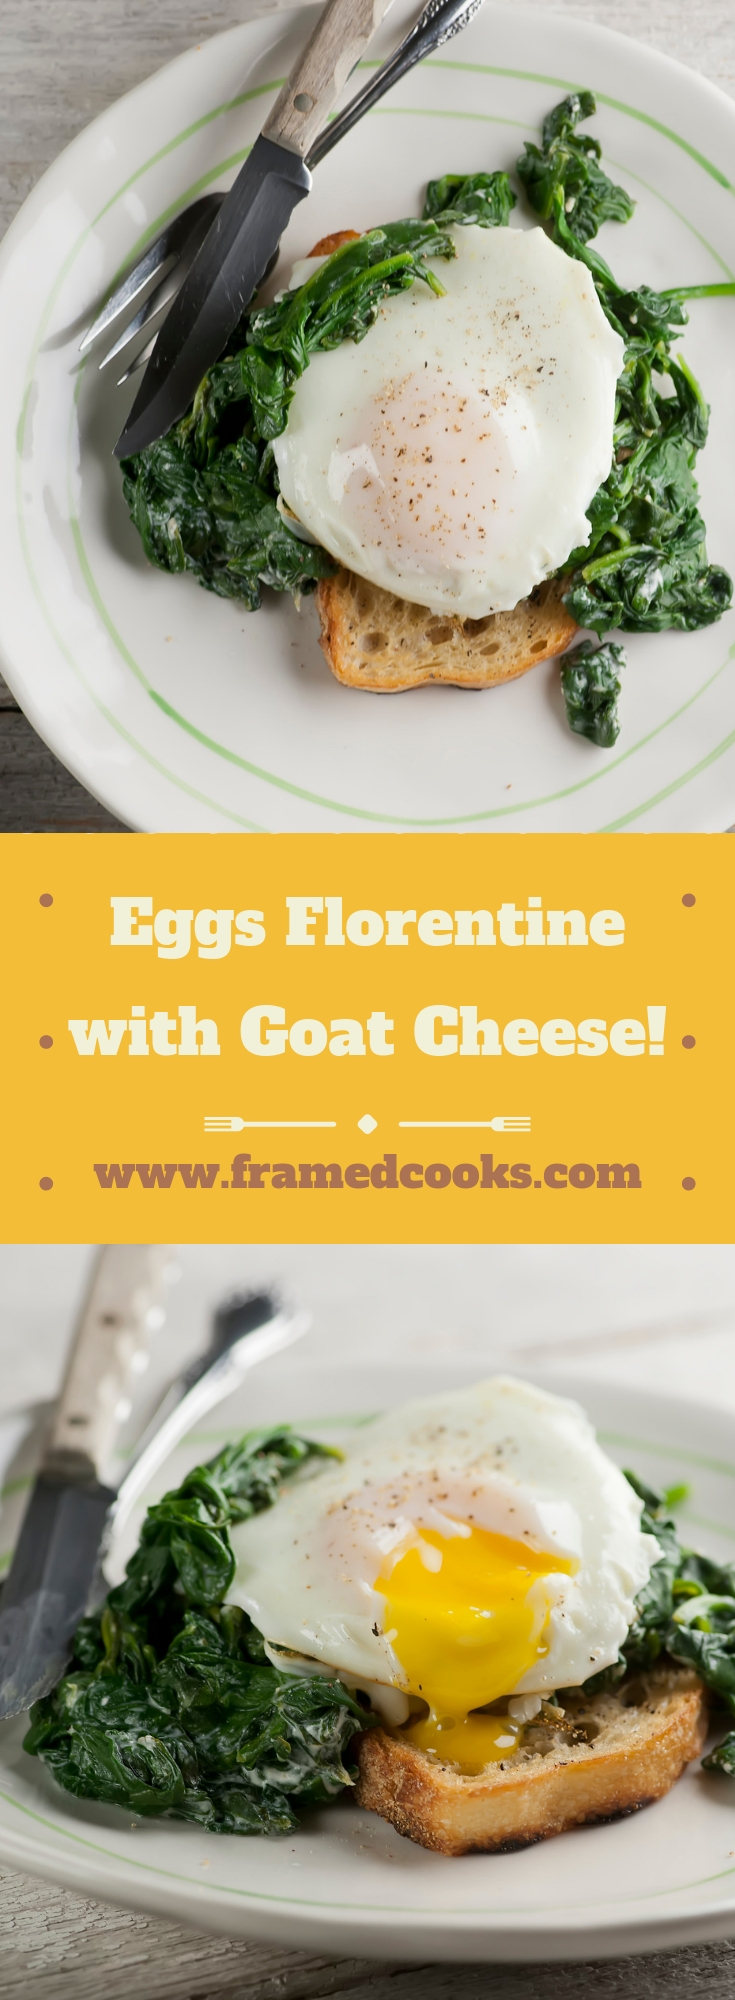 This easy recipe for eggs Florentine with spinach and goat cheese adds some creamy cheesiness to this classic breakfast and brunch favorite!